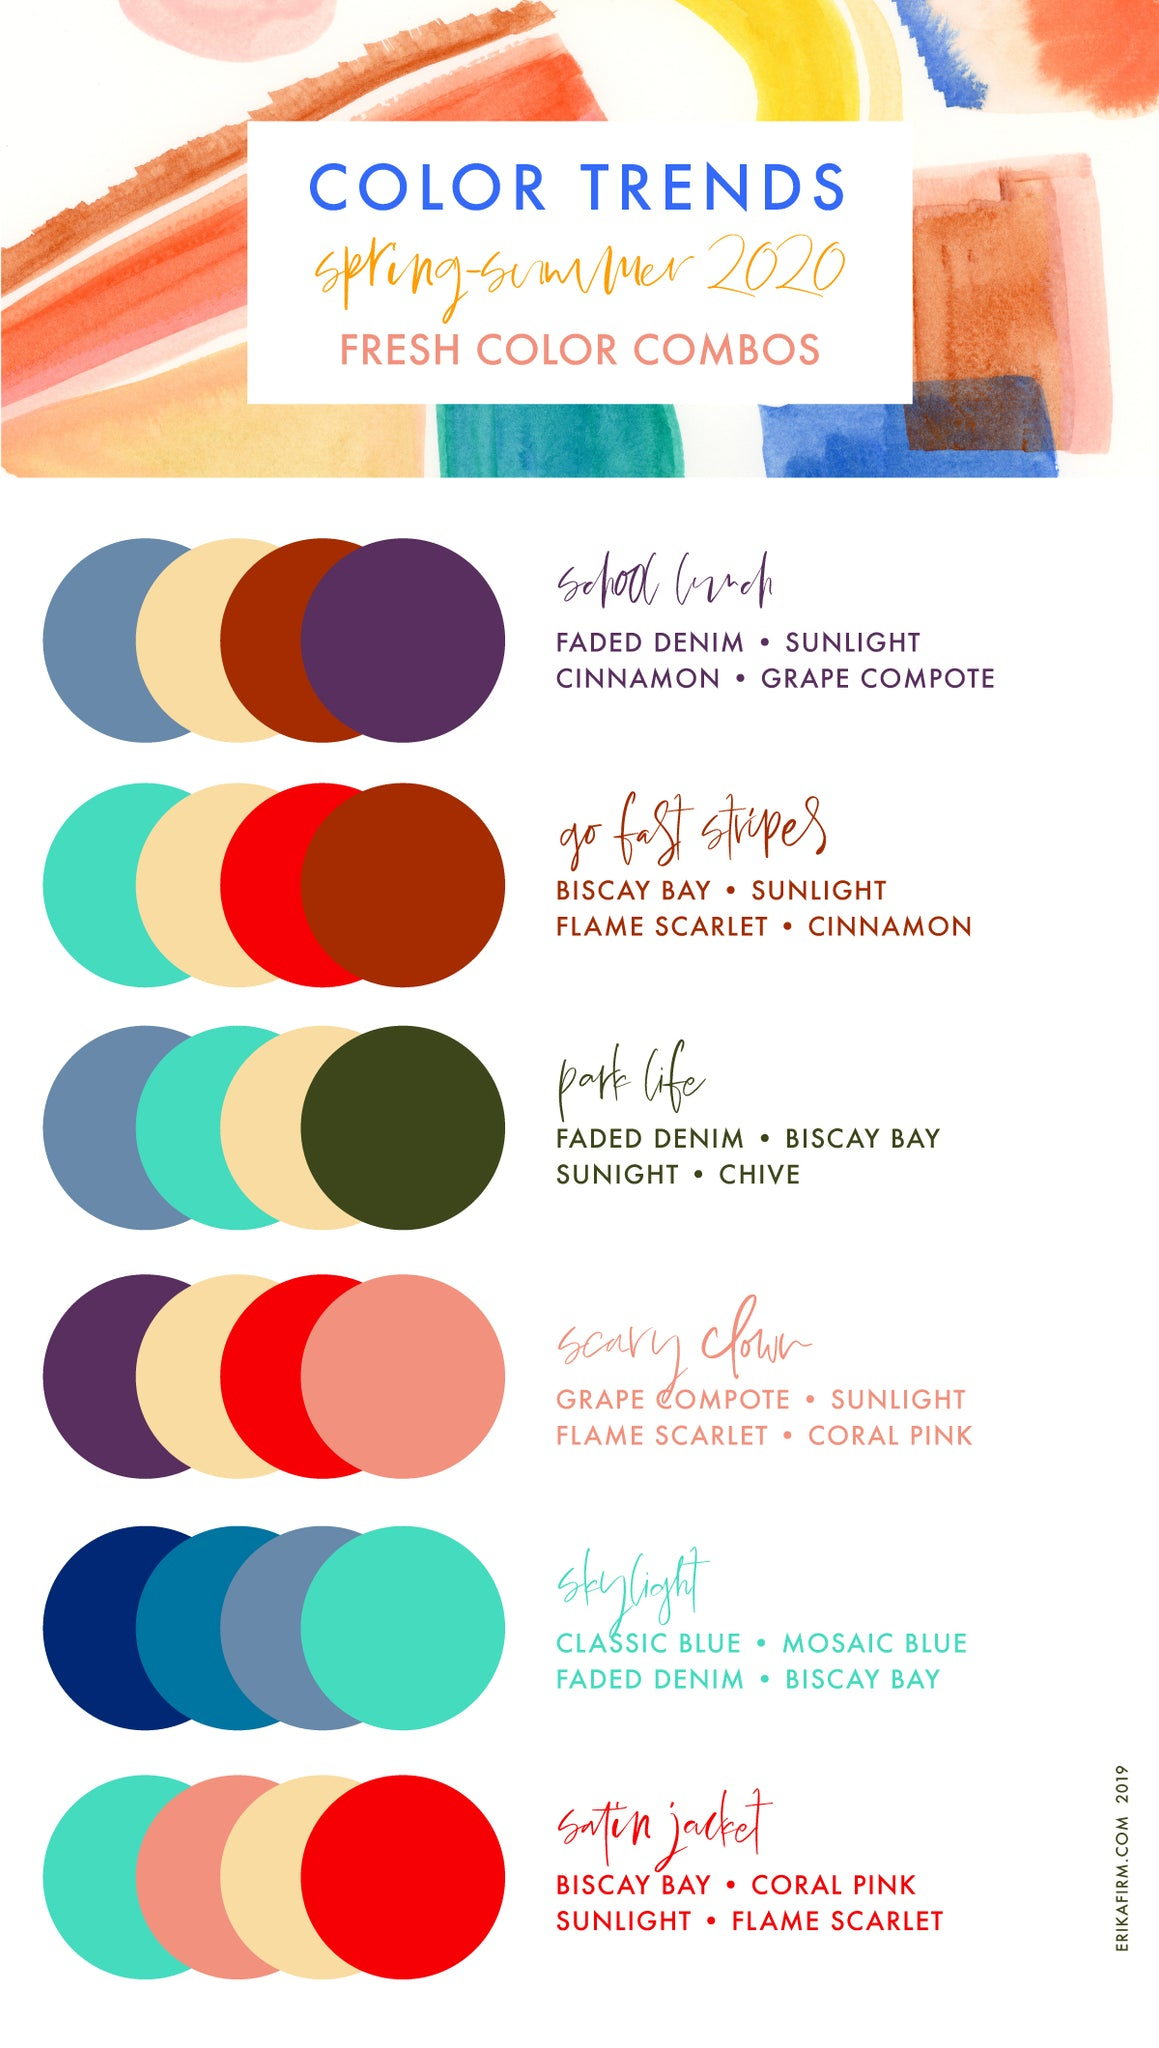 Color Trends Spring 2020 Summer 2020